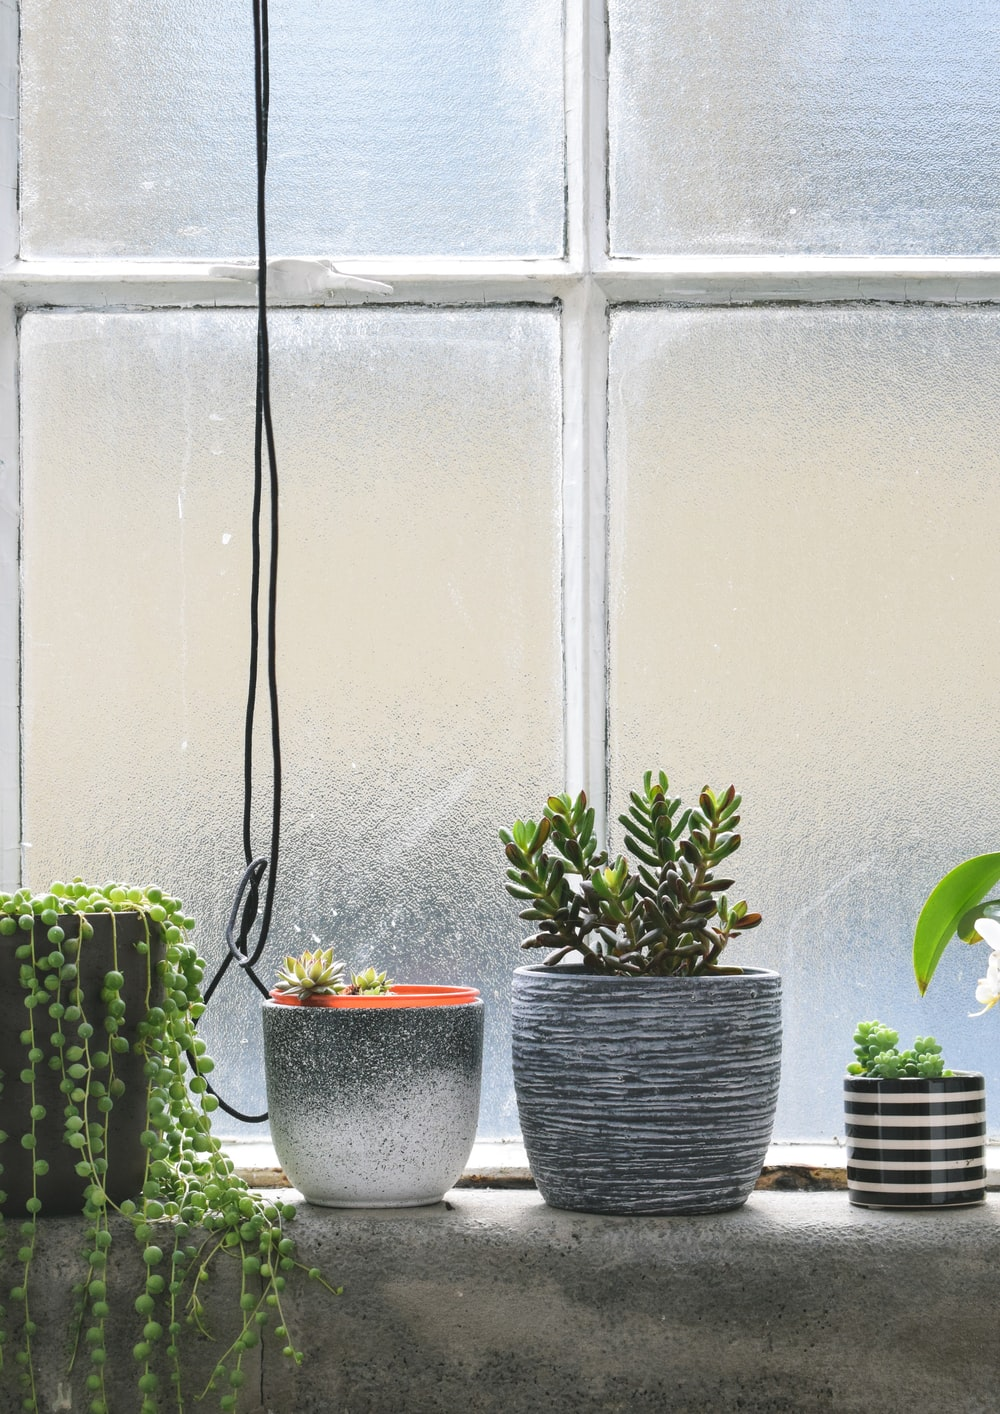 four potted plants placed near window